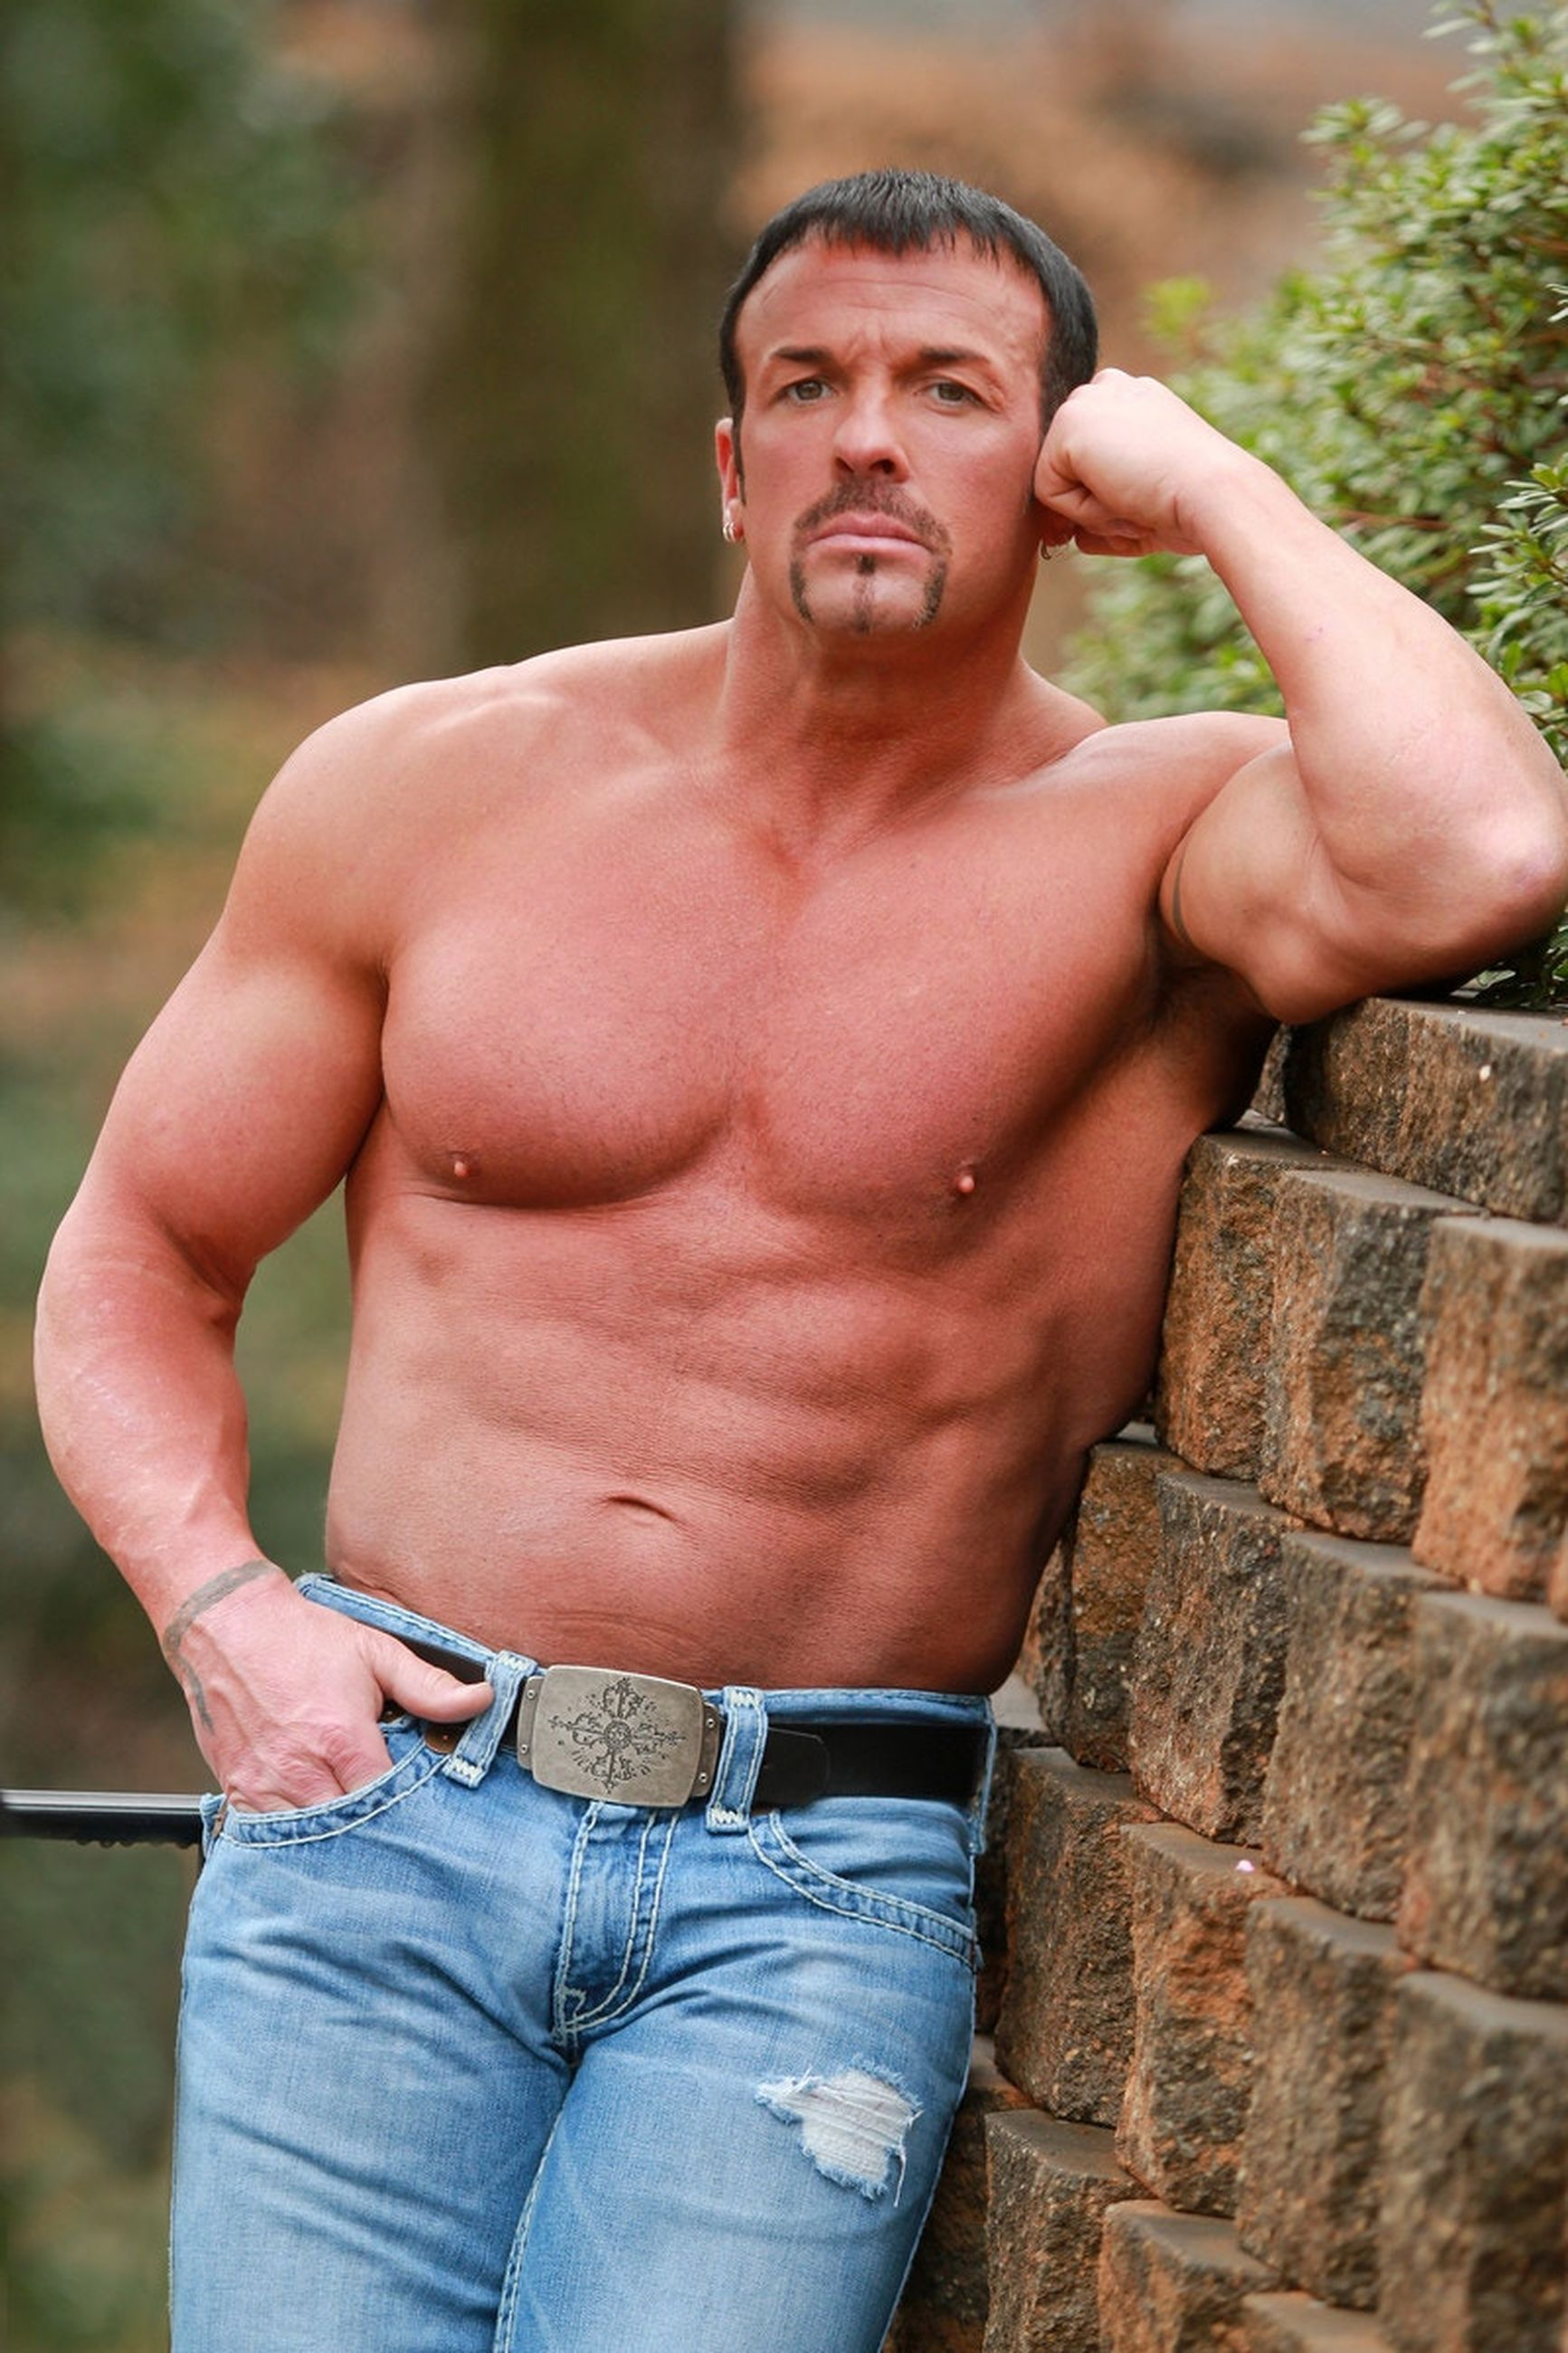 shirtless, one person, leisure activity, real people, muscular build, lifestyles, outdoors, standing, front view, day, handsome, casual clothing, men, portrait, young adult, one man only, fashion model, only men, adult, people, adults only